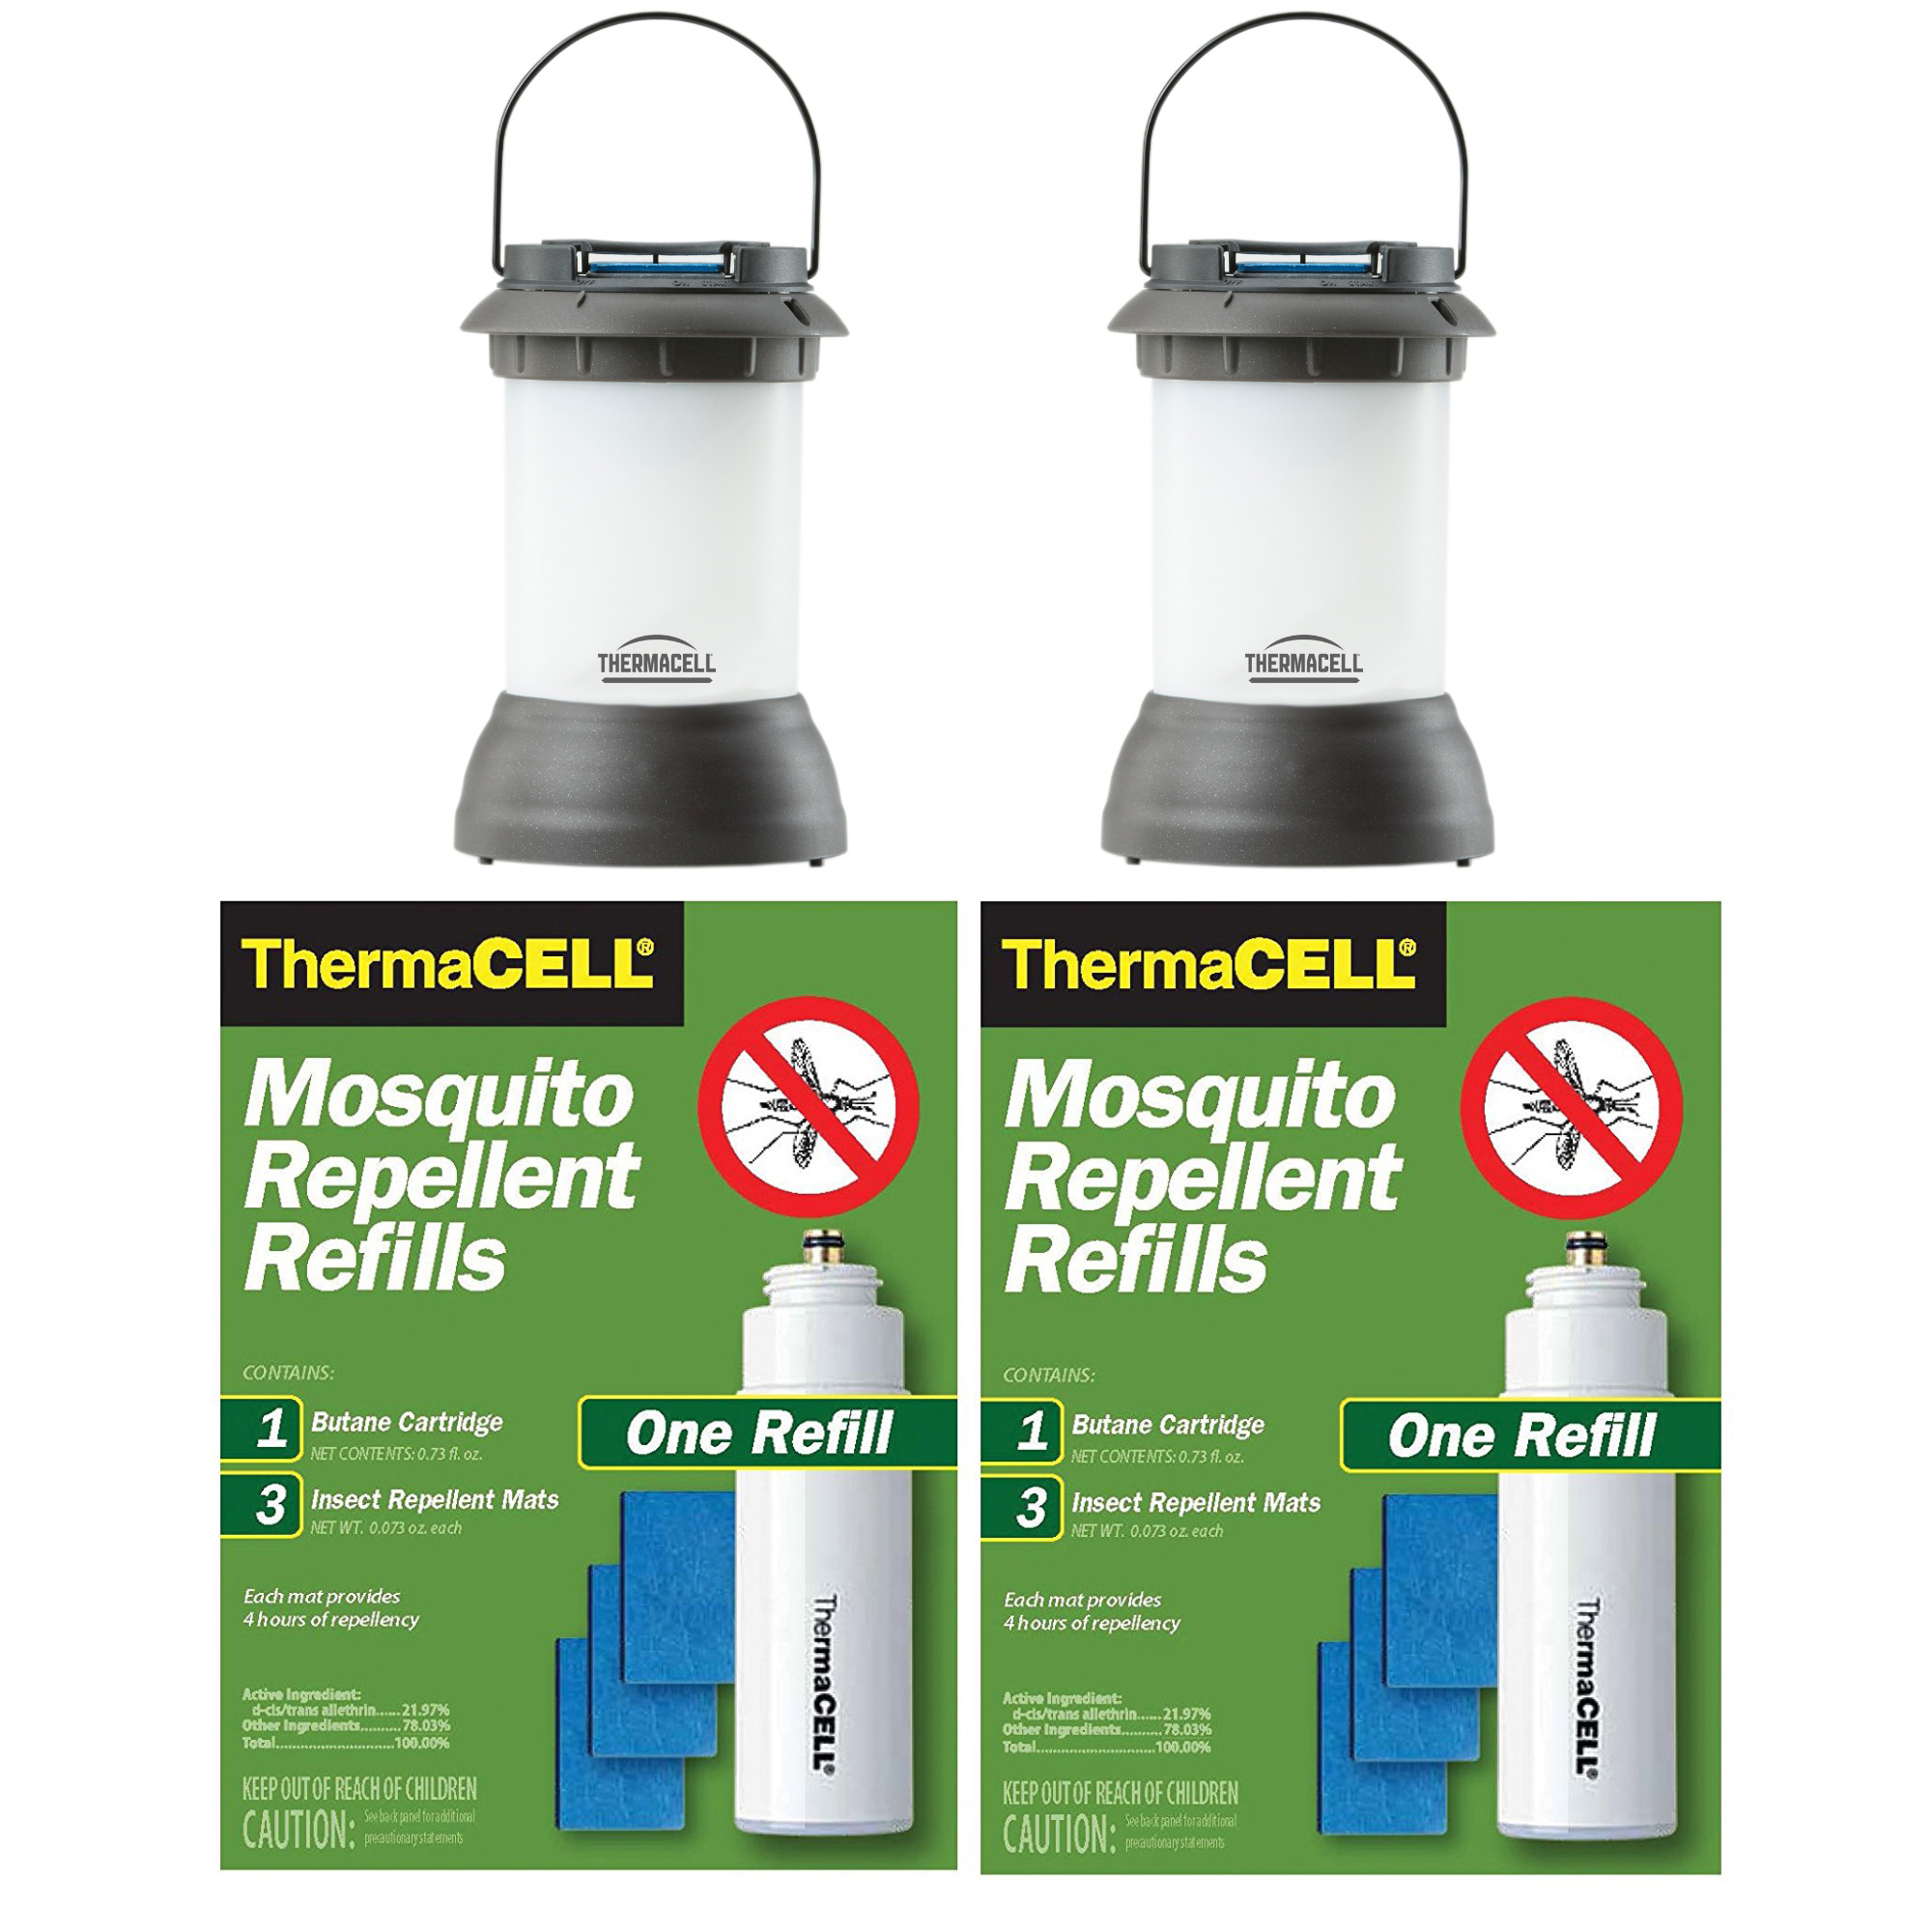 ThermaCELL Patio Shield Mosquito Repeller plus Lanterns (2) & 2 R-1 Refill Packs by Thermacell